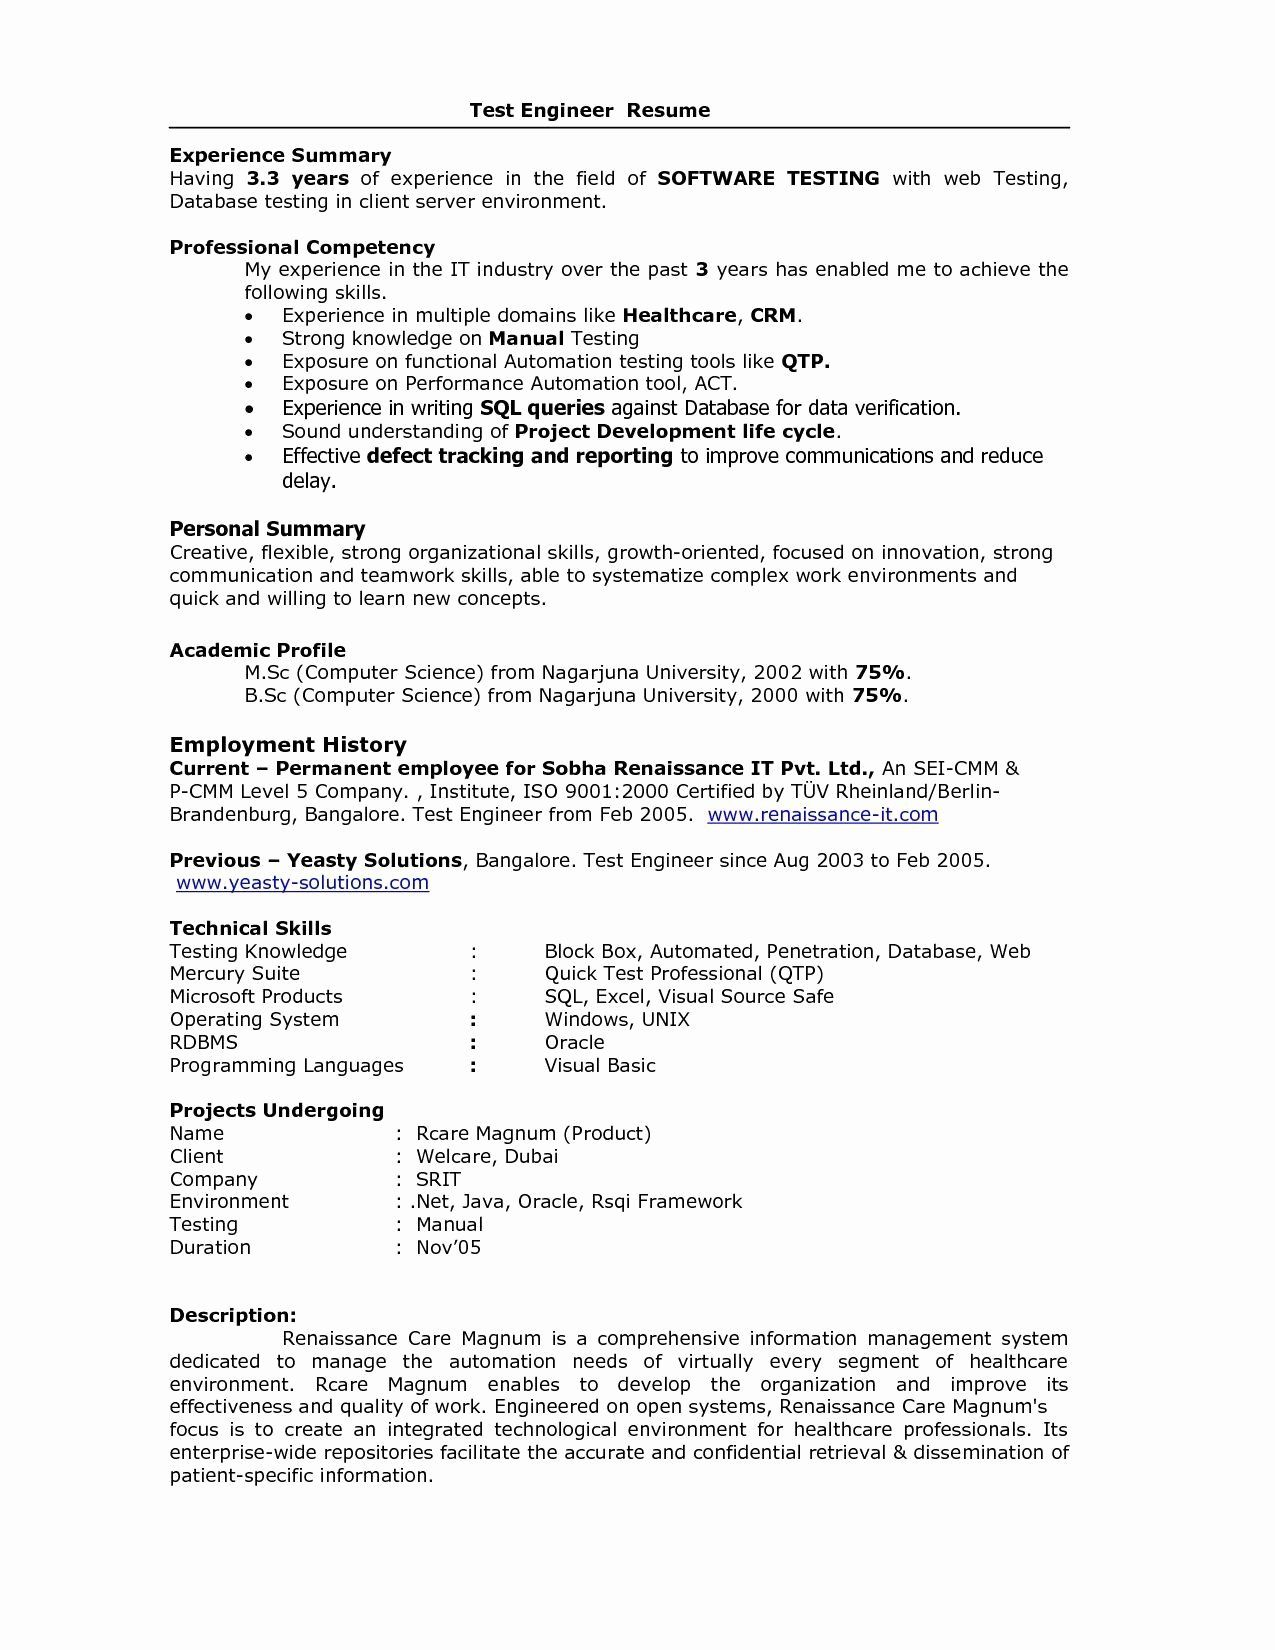 Qa Tester Resume with 5 Years Experience Fresh for 5 Years